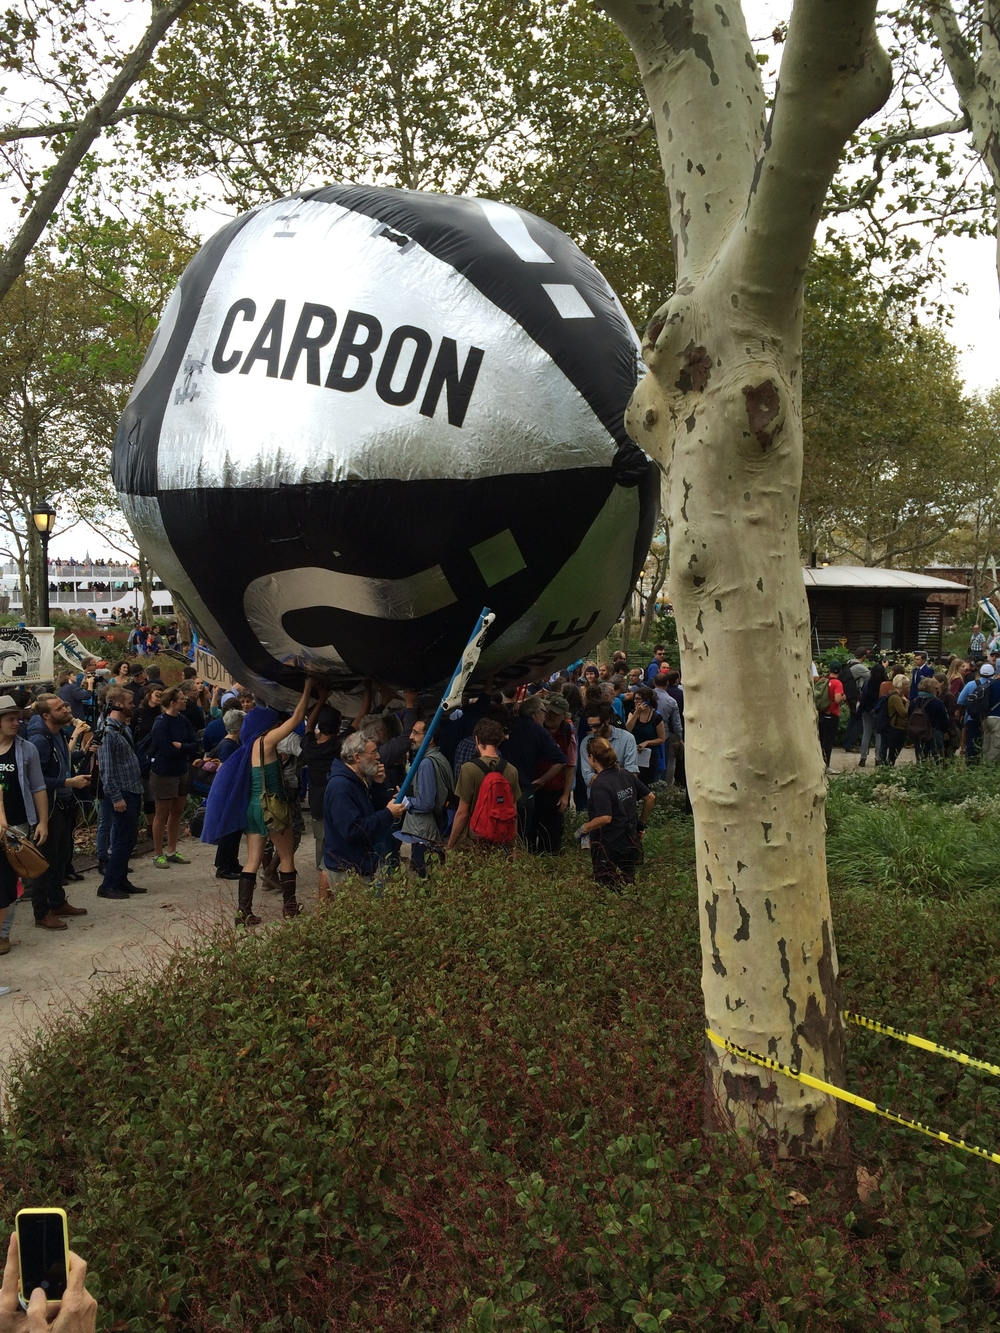 The carbon bubble makes its way toward Wall Street